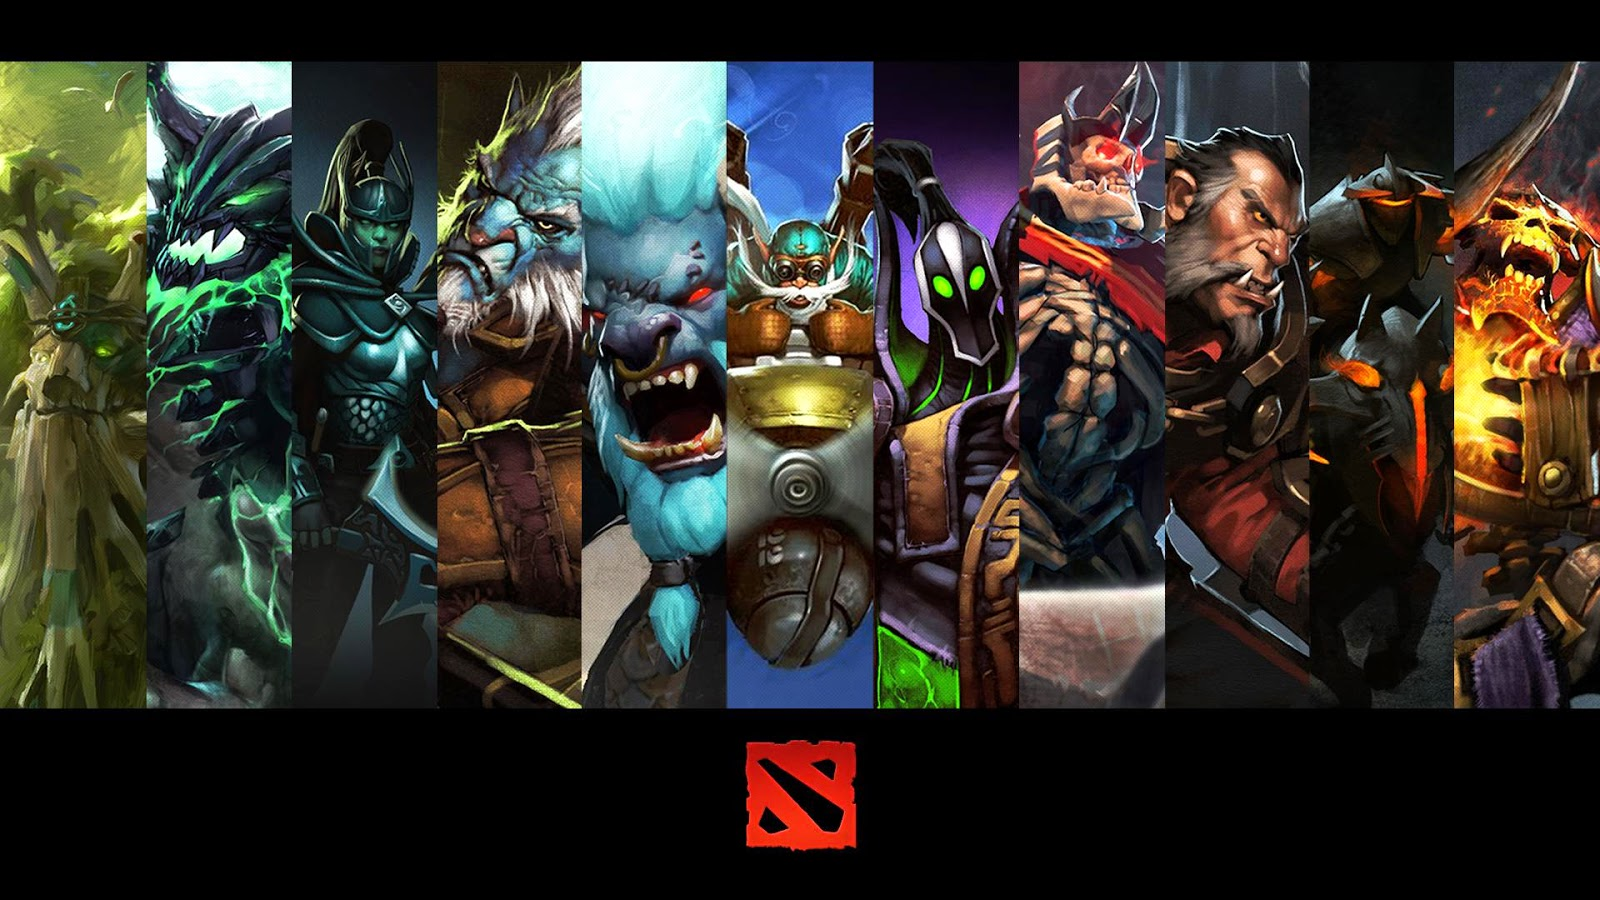 Best Games Review Blog: Dota 2 – New Map Changes Give a Different